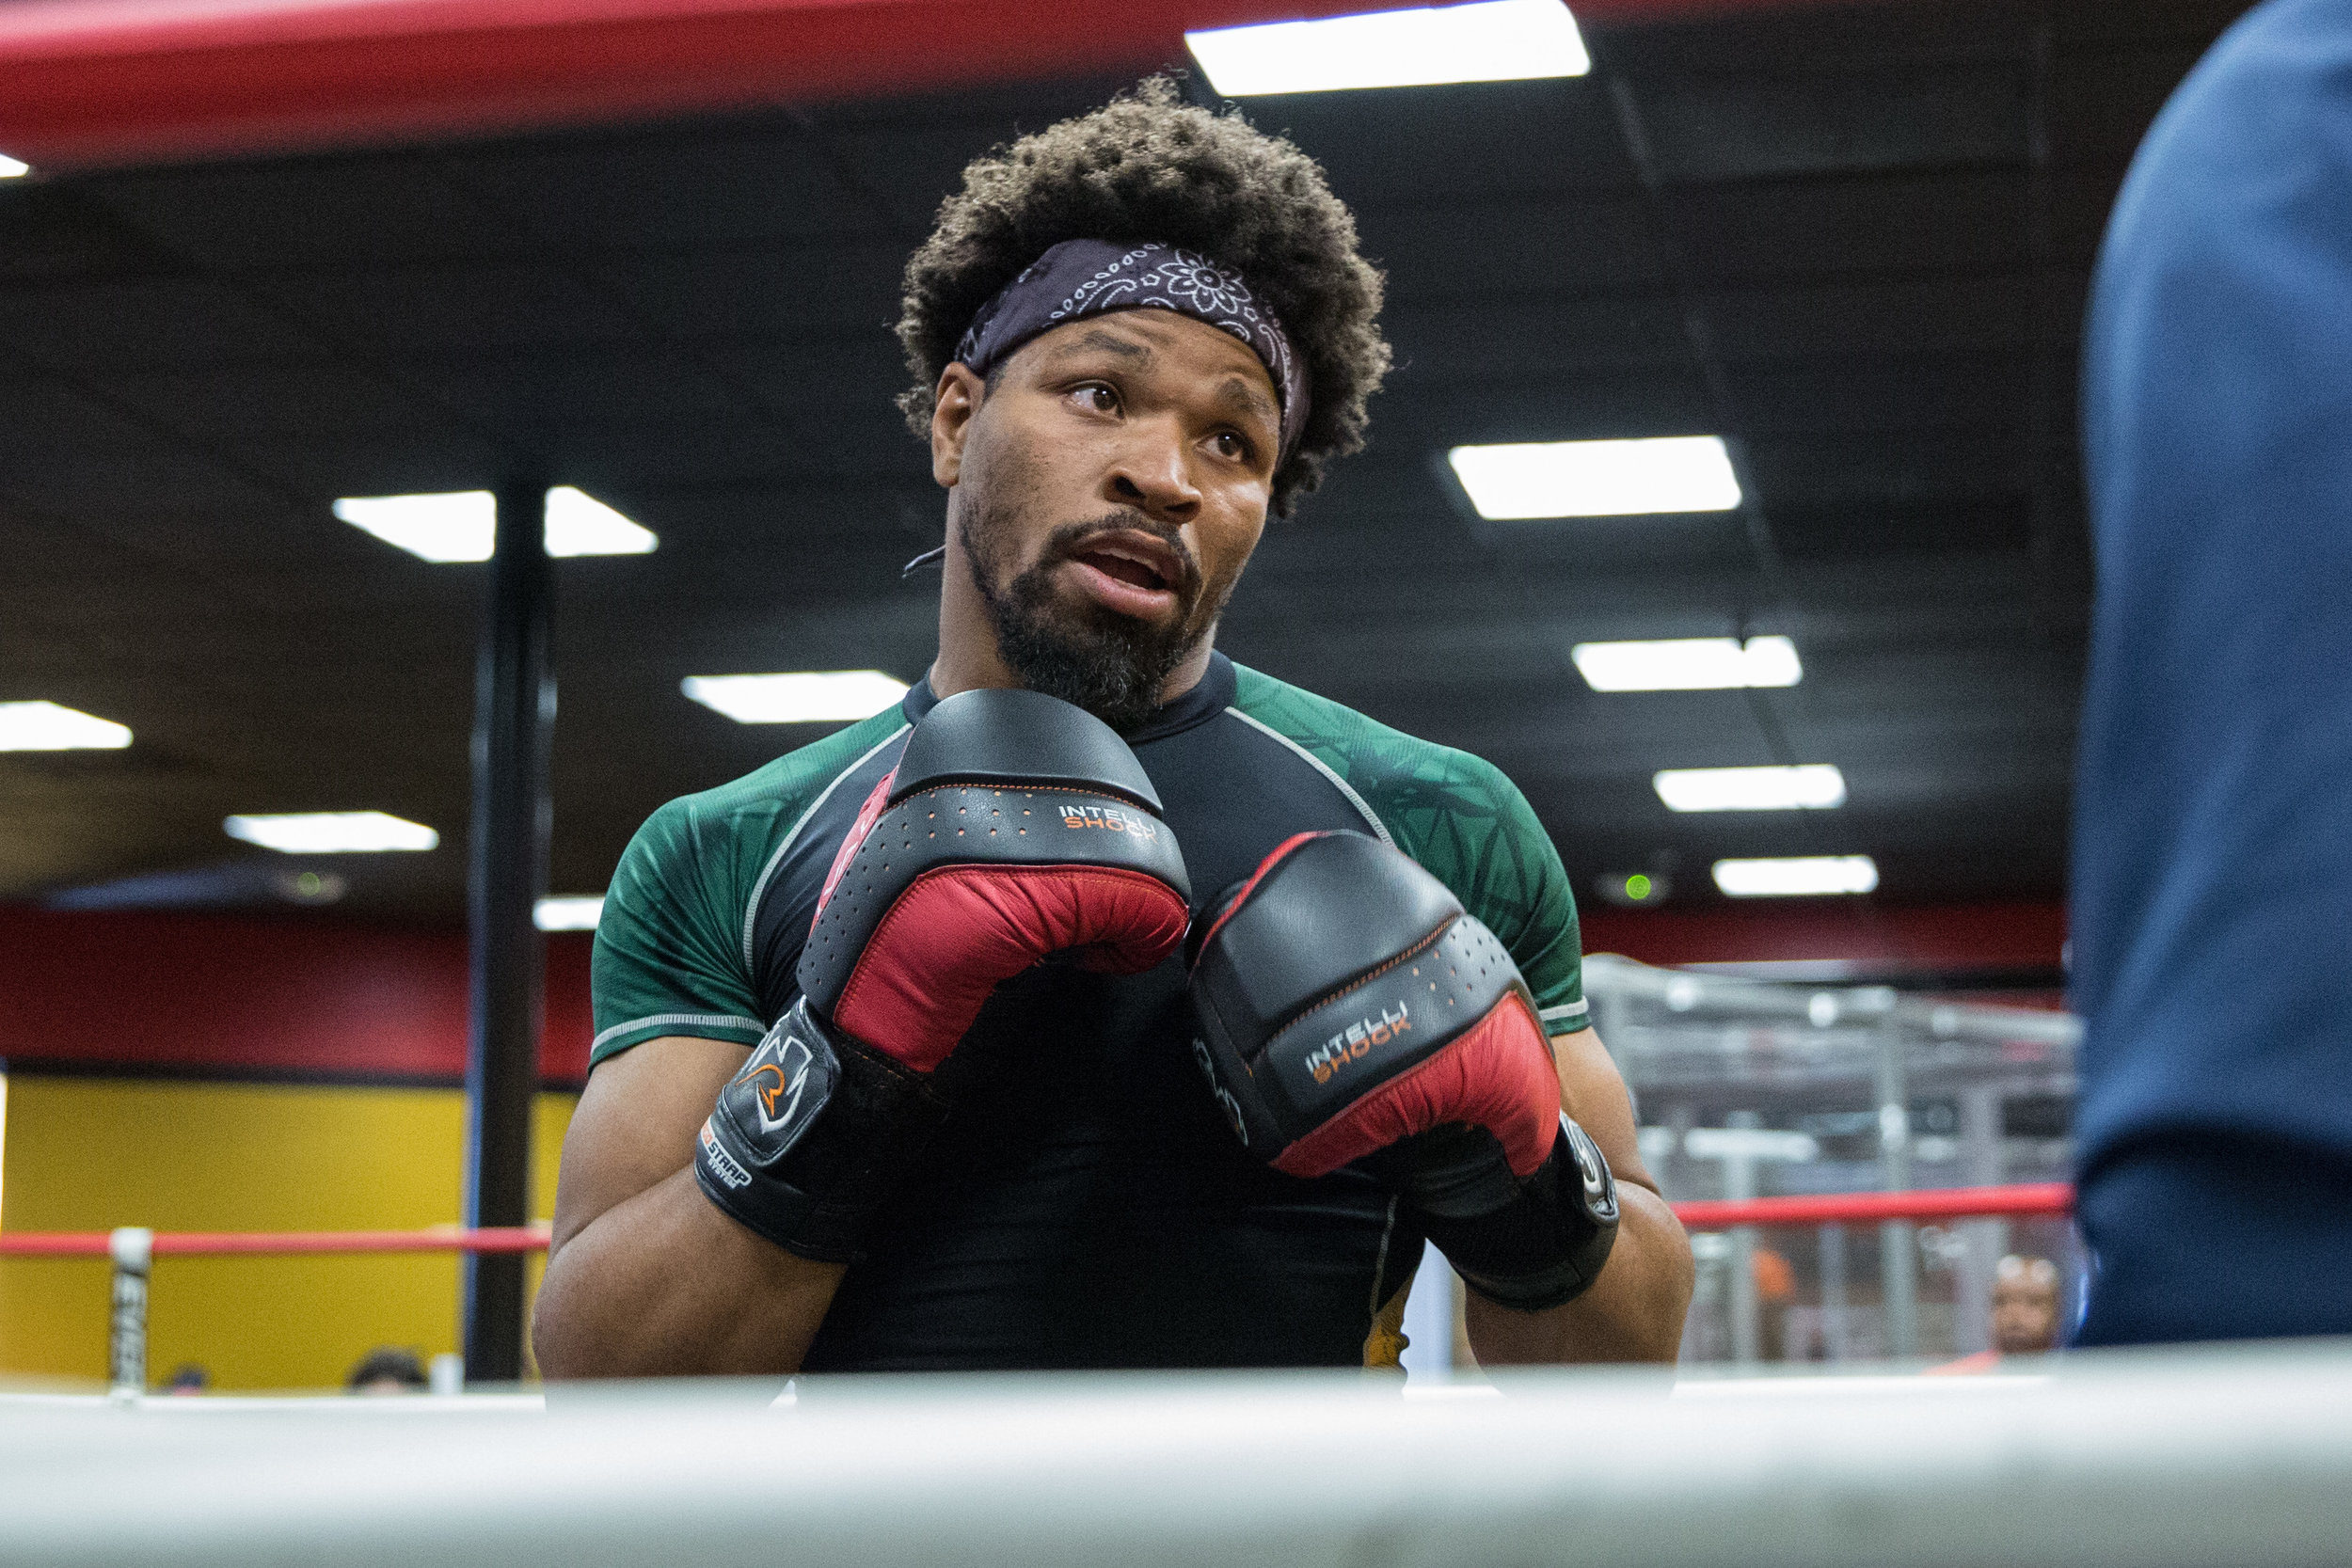 Shawn Porter puts in work in front of the media ahead of his clash with former world champion Andre Berto. Photo Credit:Ryan Greene / Premier Boxing Champions